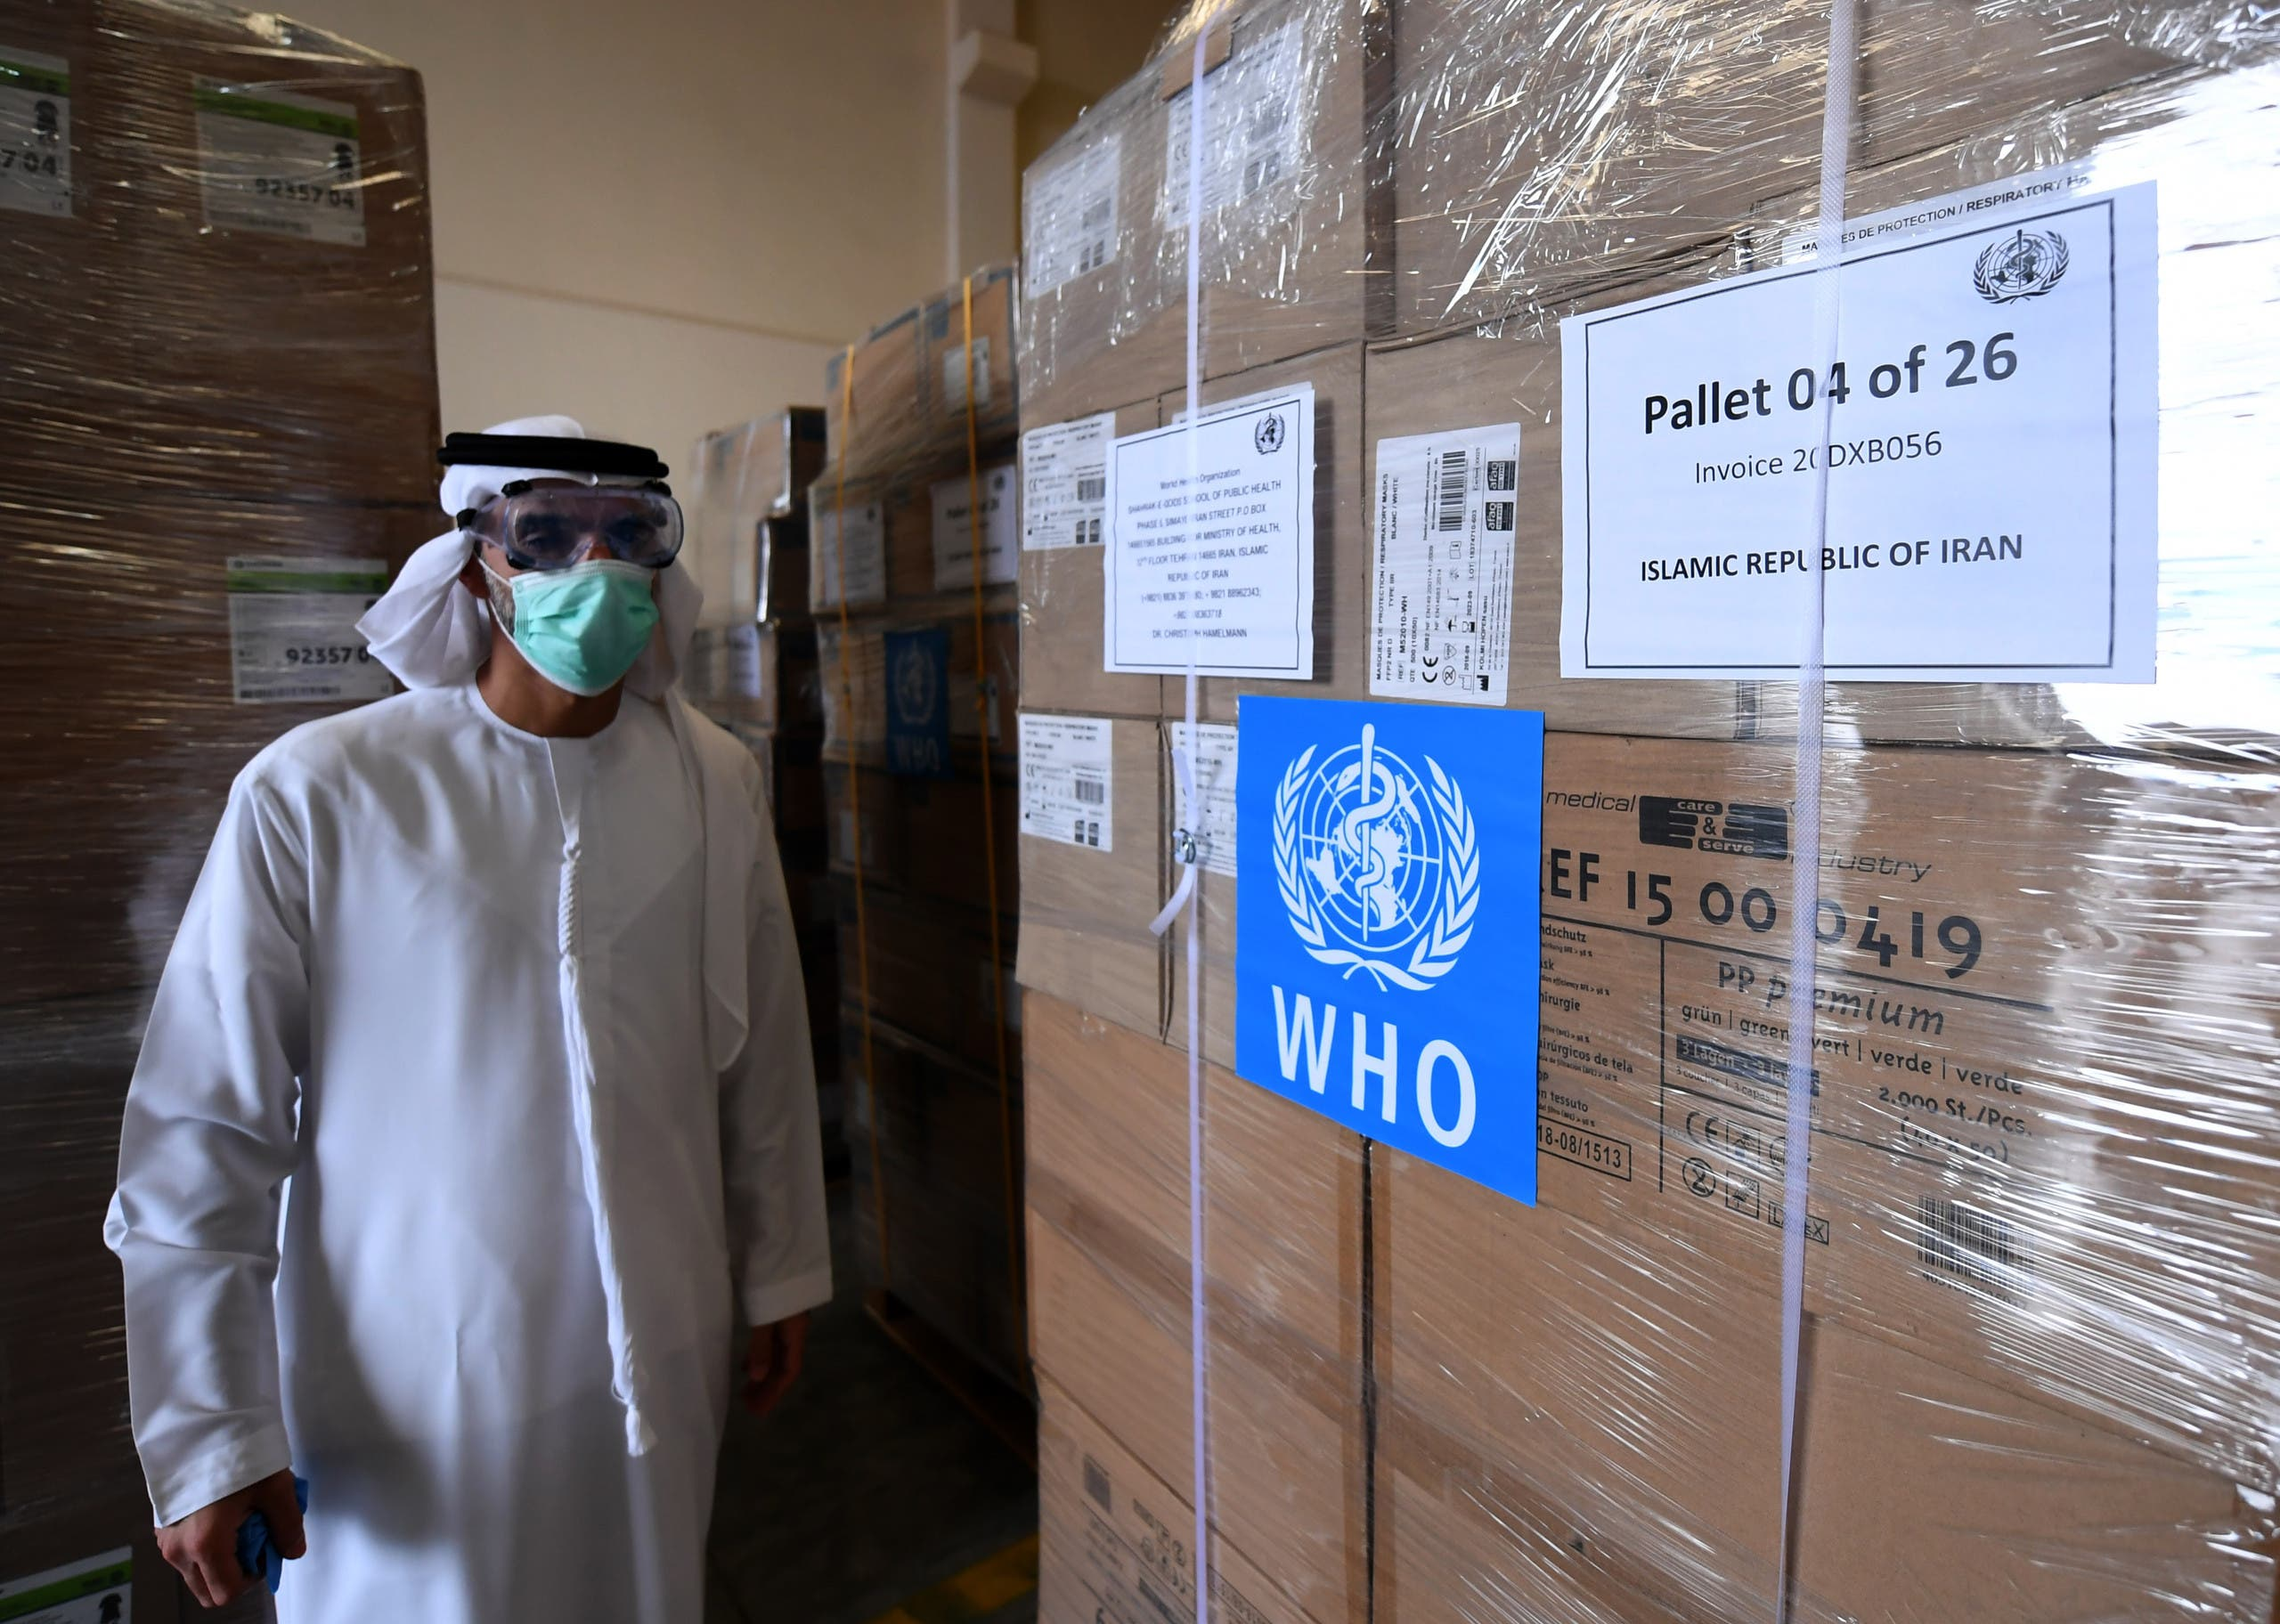 Tons of medical equipment and coronavirus testing kits provided by the World Health Organization are pictured at the al-Maktum International airport in Dubai on March 2, 2020 as it is prepared to be delivered to Iran. (AFP)